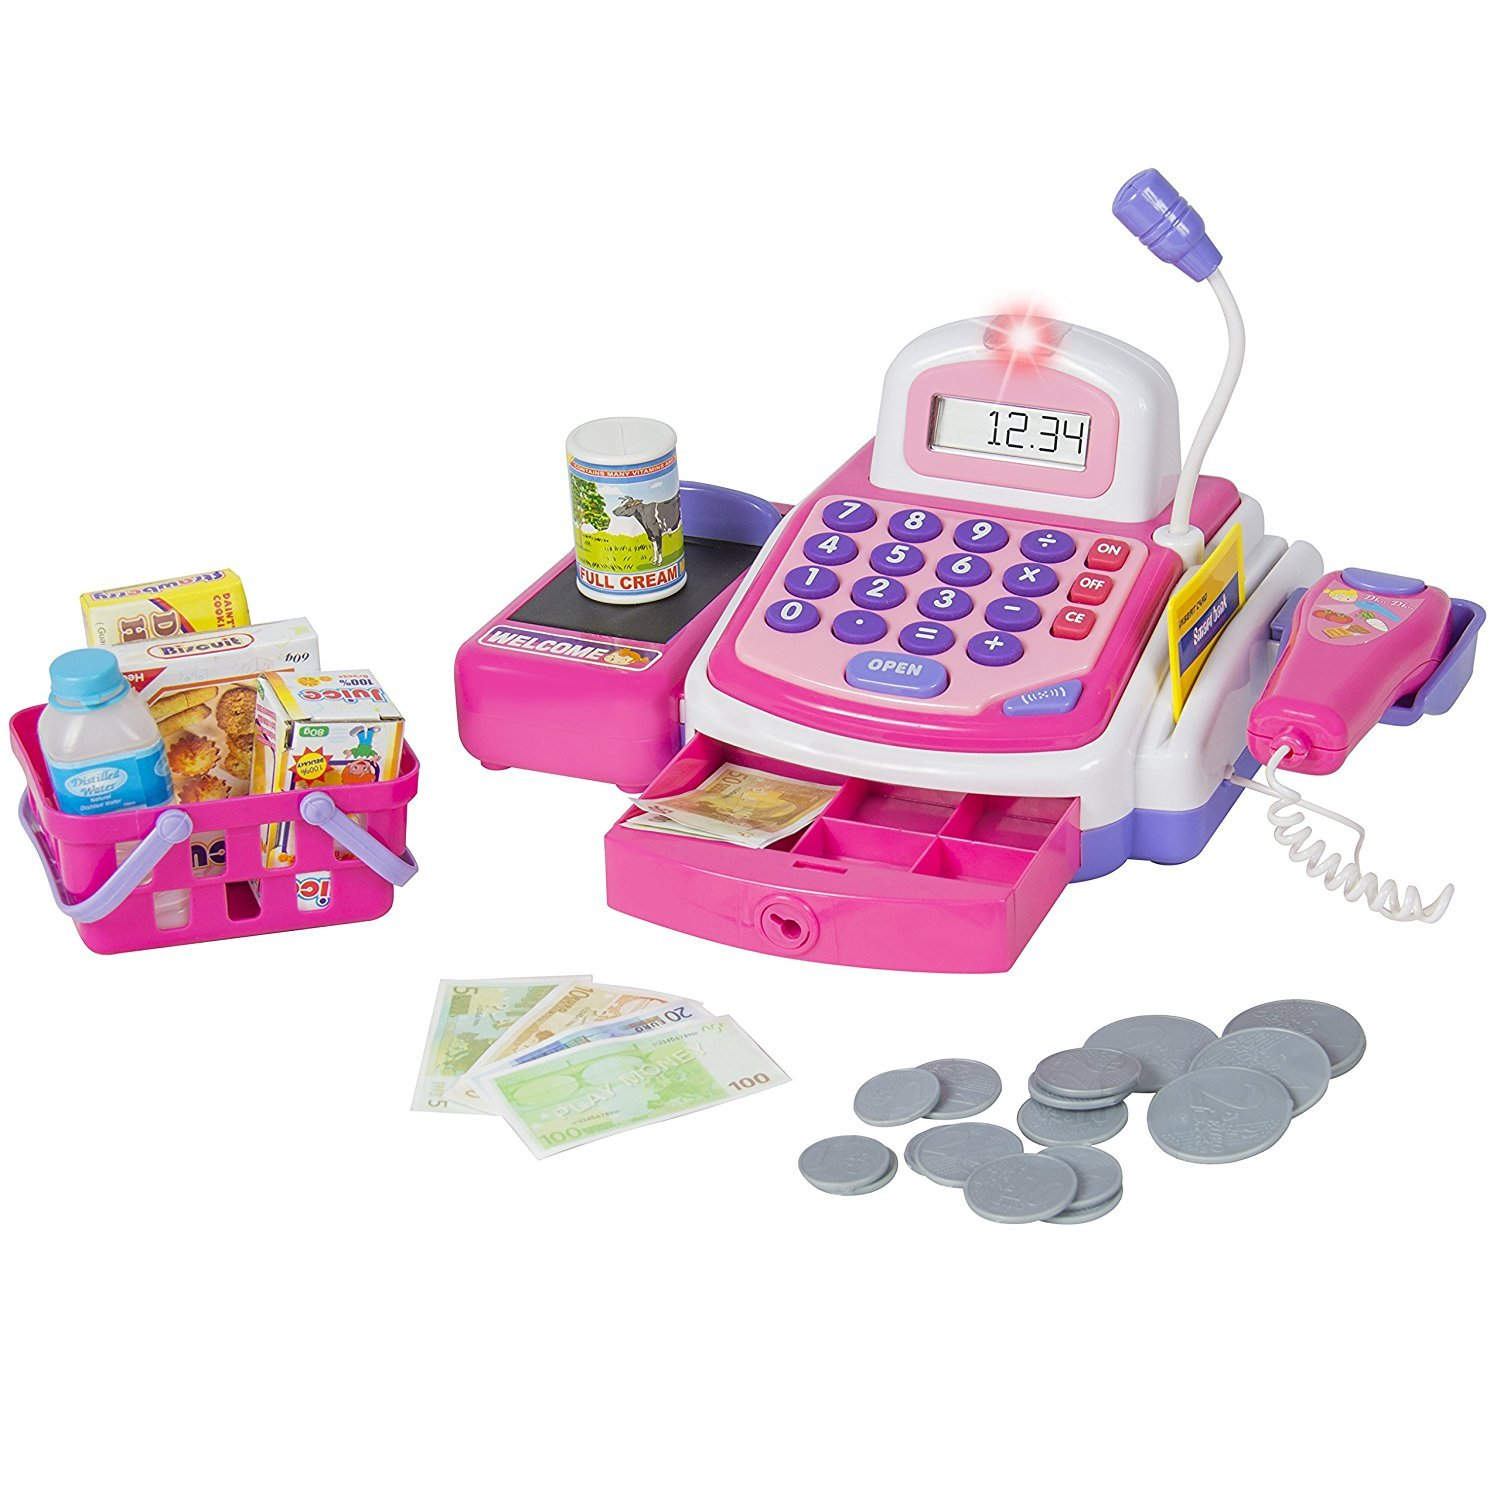 Just Like Home Cash Register - Colors may vary